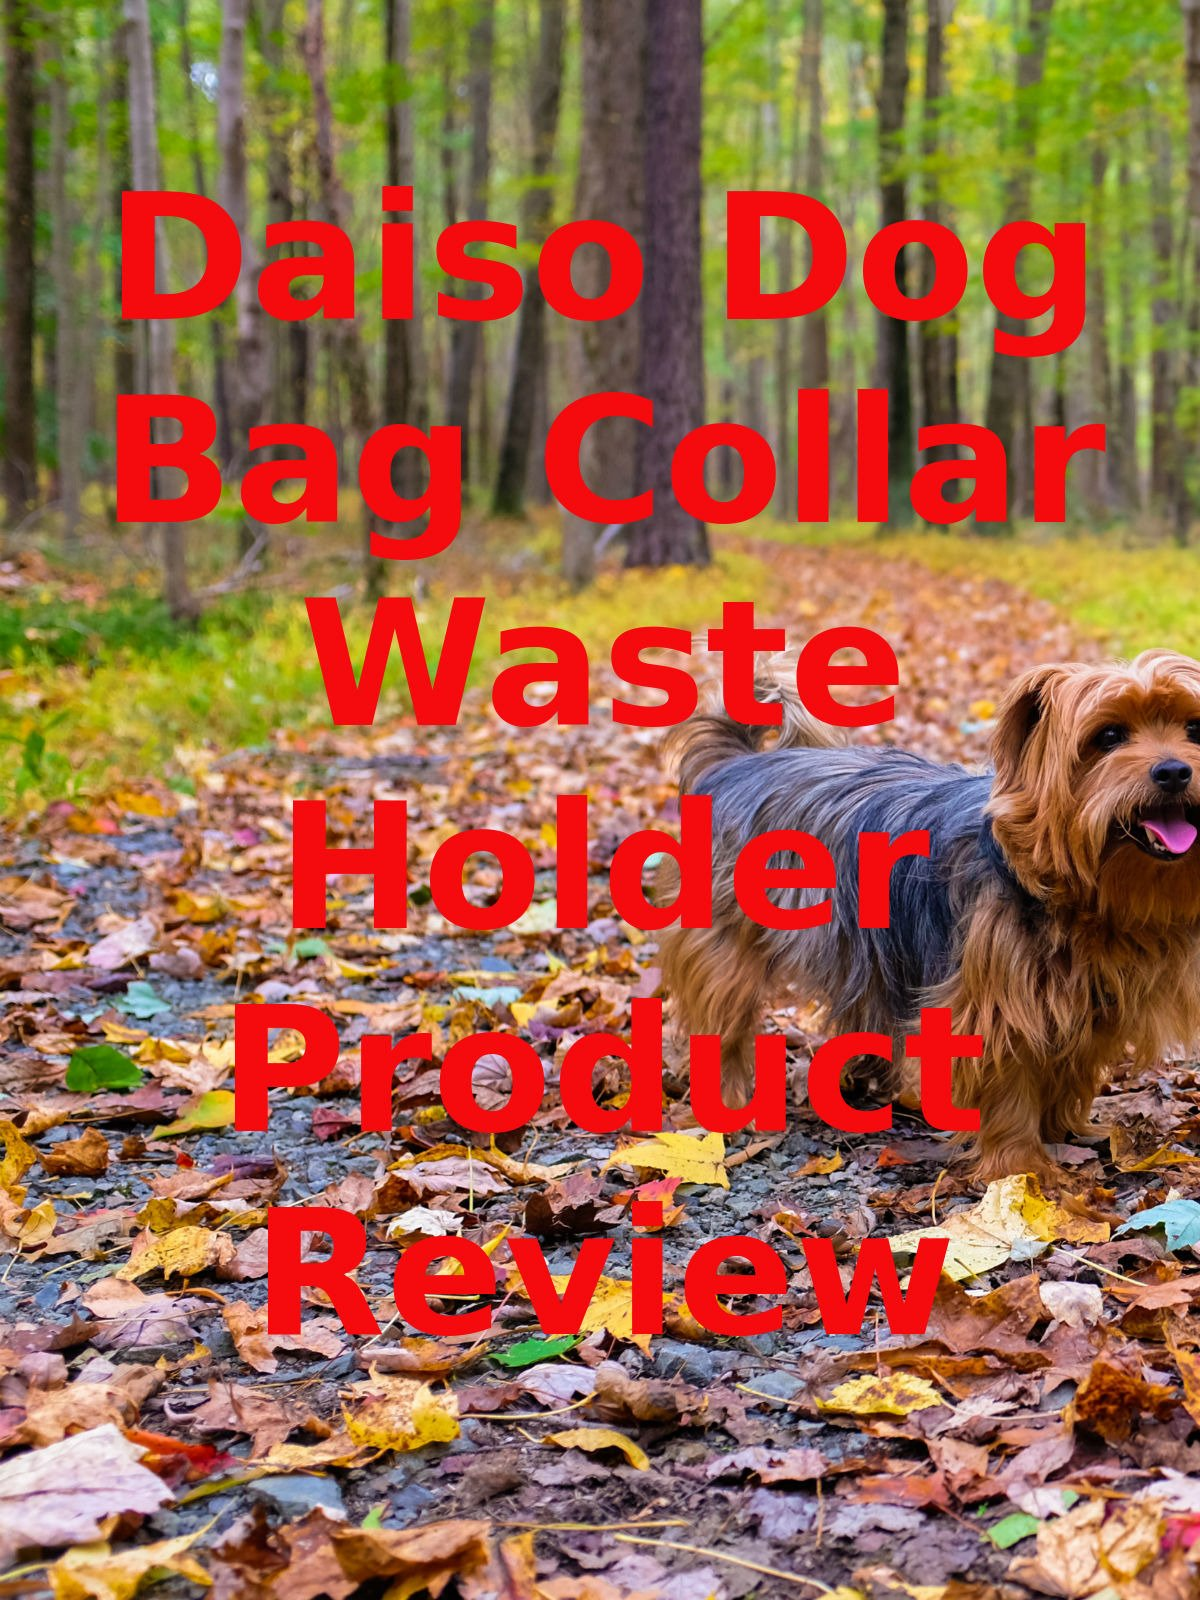 Review: Daiso Dog Bag Collar Waste Holder Product Review